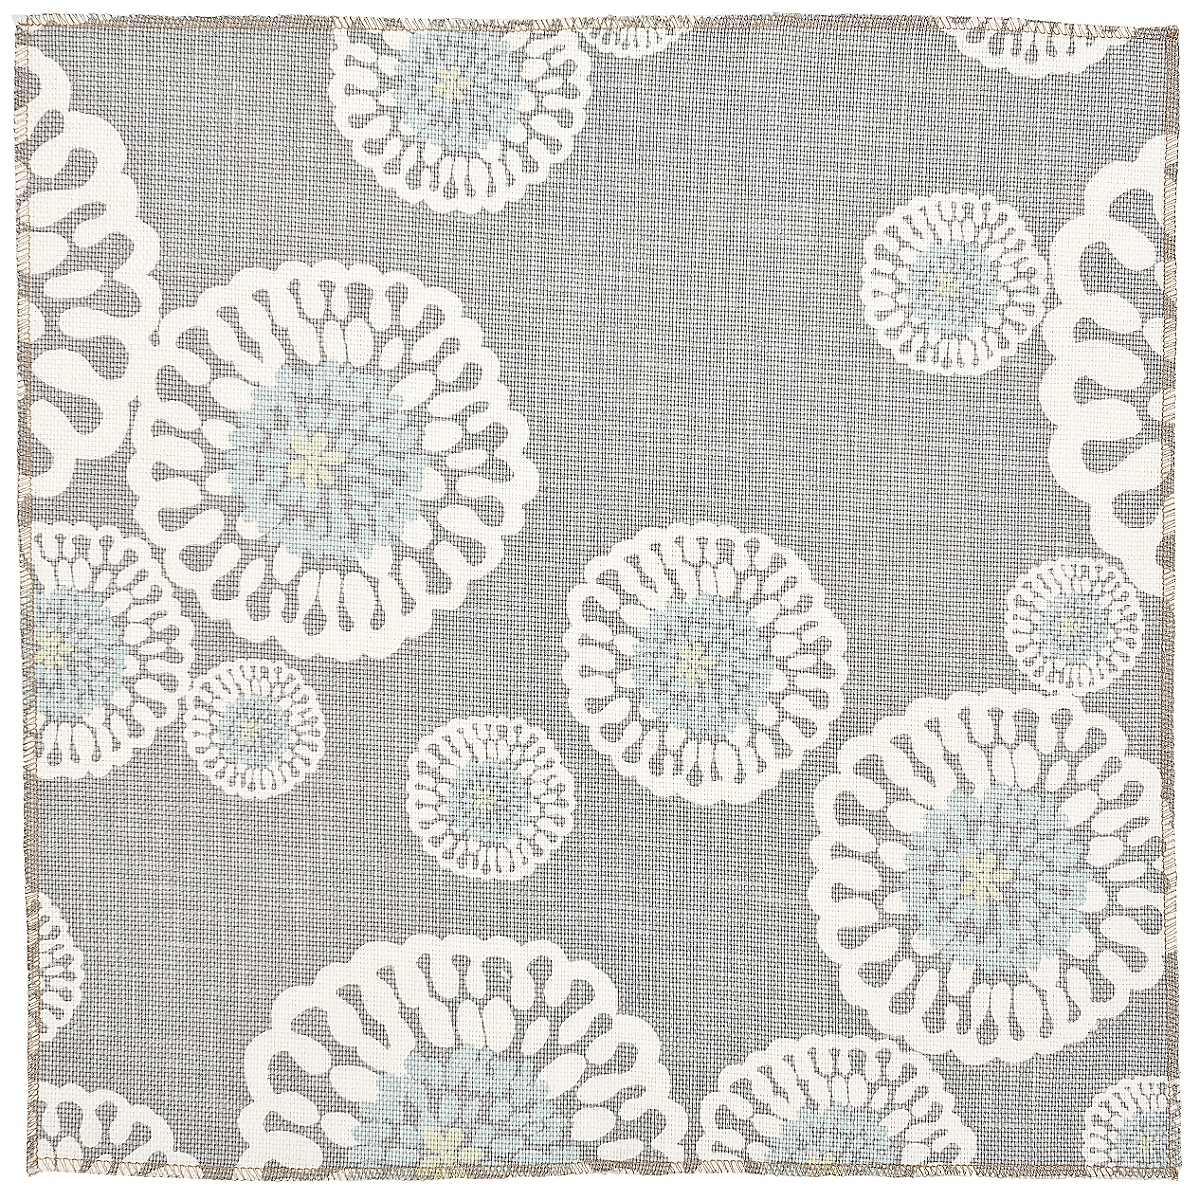 Grand Mum: Oyster (fabric yardage)